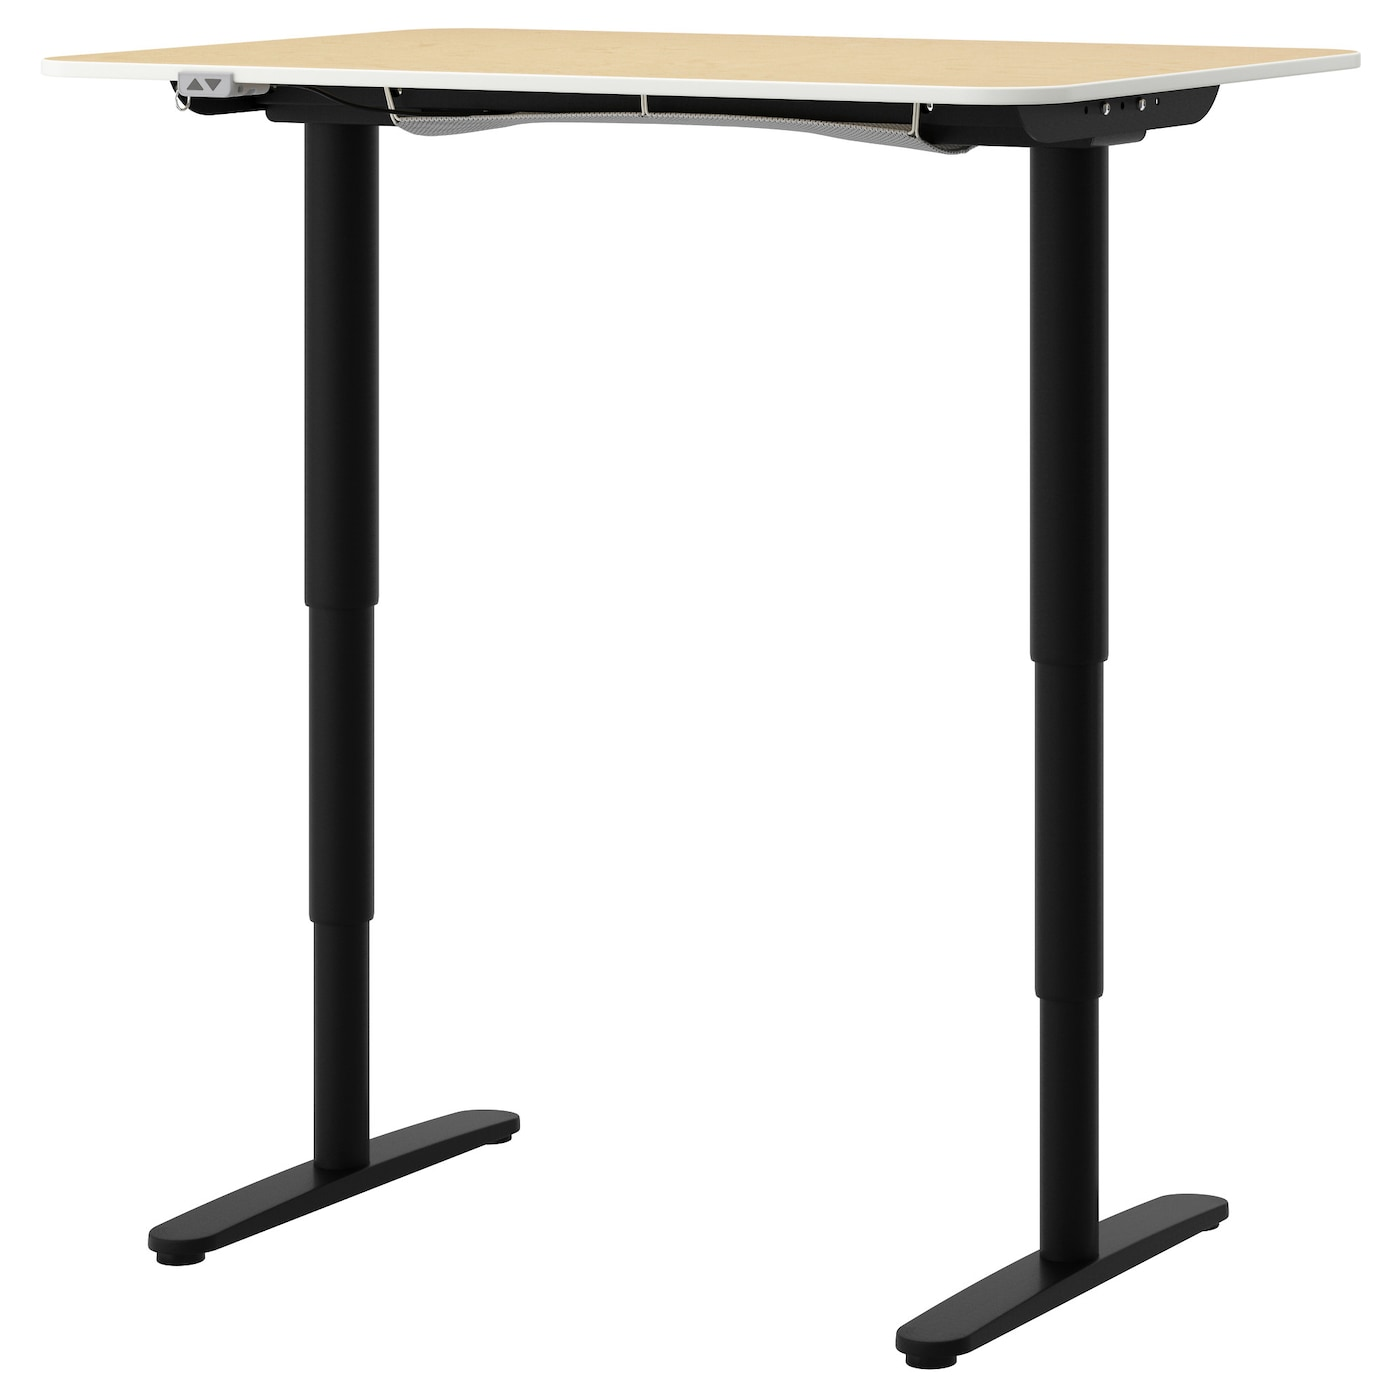 greatest convertible within uncategorized adjustable best and for desk style ikea nsyd inspiration inspiring pic standing